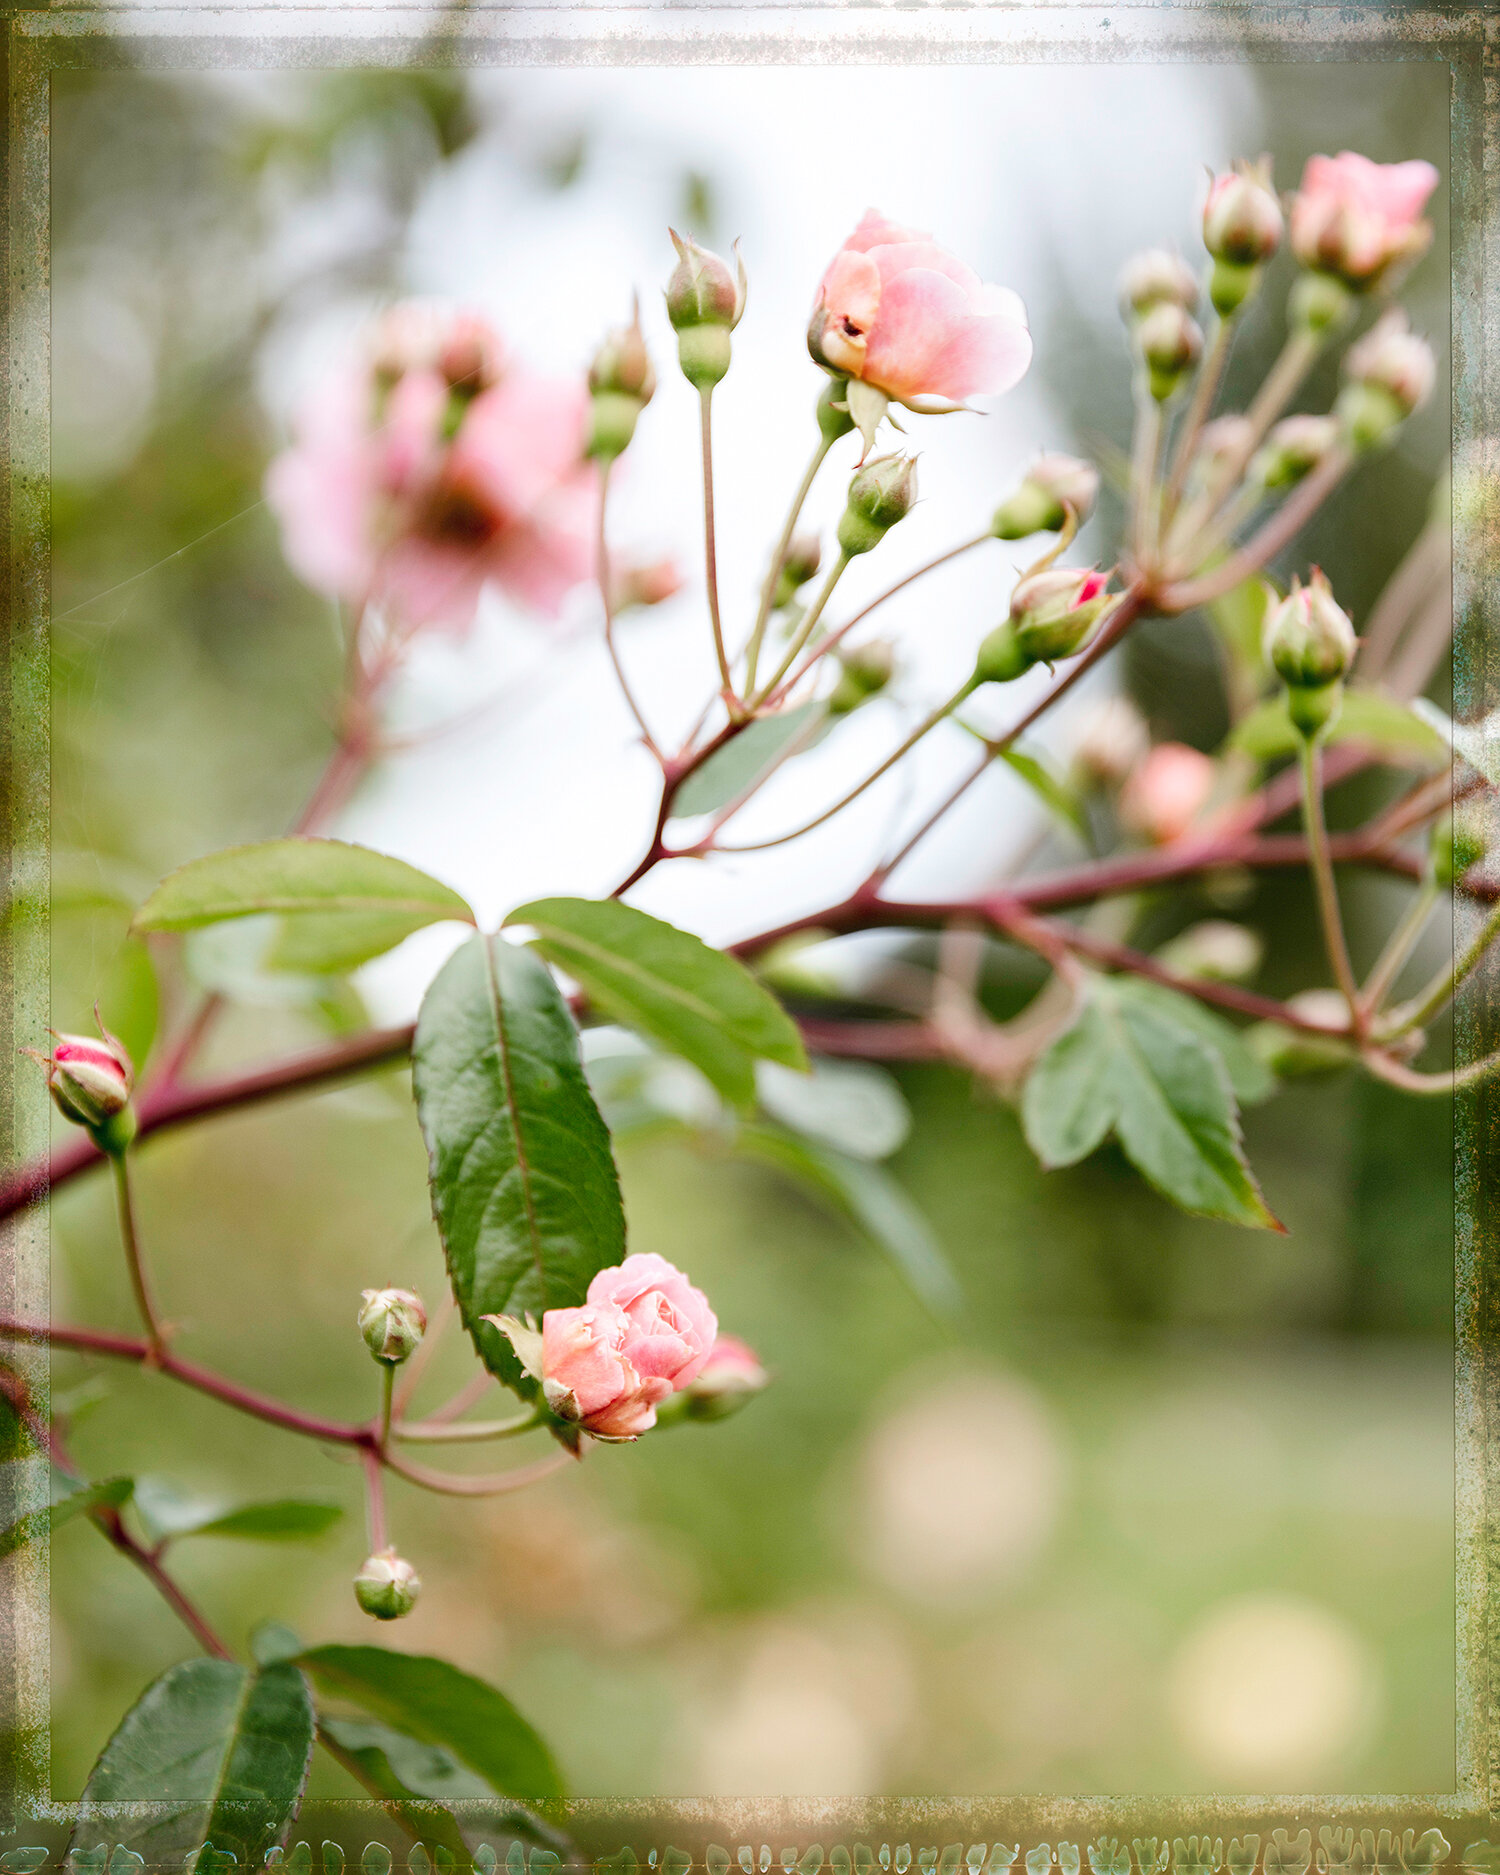 laura_farrell_photography_pink_baby_roses_manneville_la_raoult_normandy_france.jpg